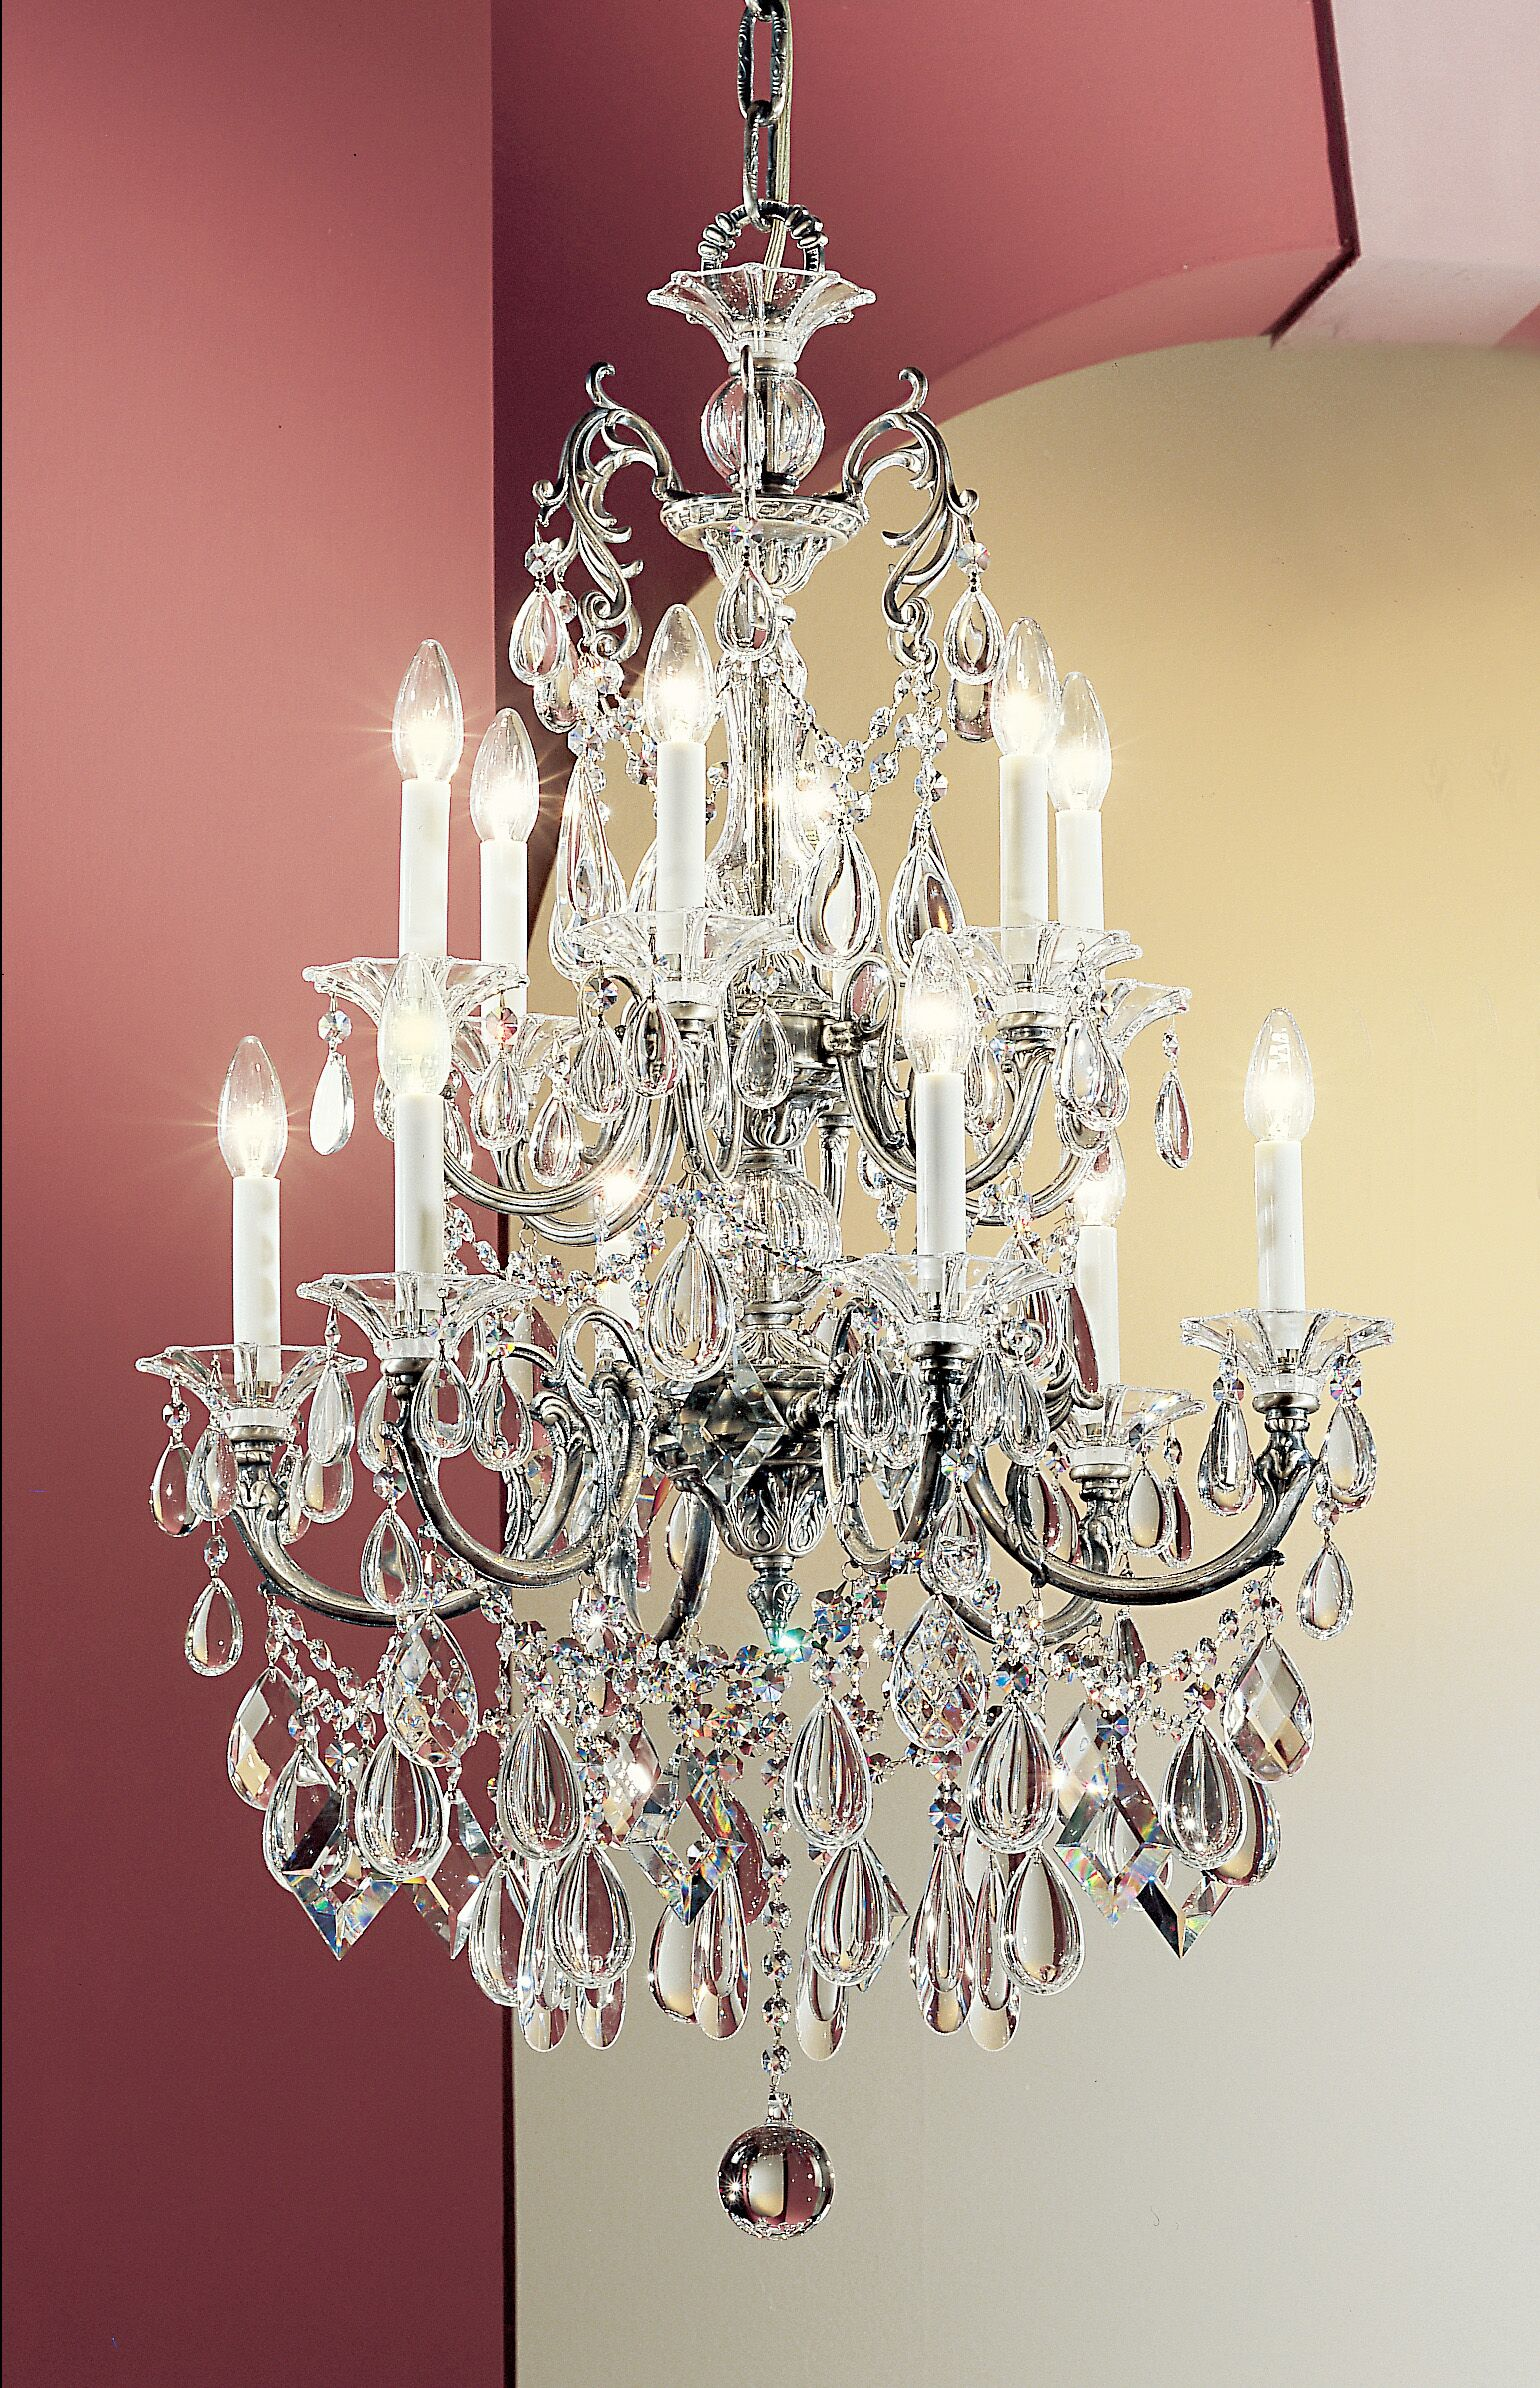 Via Venteo 12-Light Candle Style Chandelier Finish: Ebony Pearl, Crystal Type: Swarovski Spectra Crystal